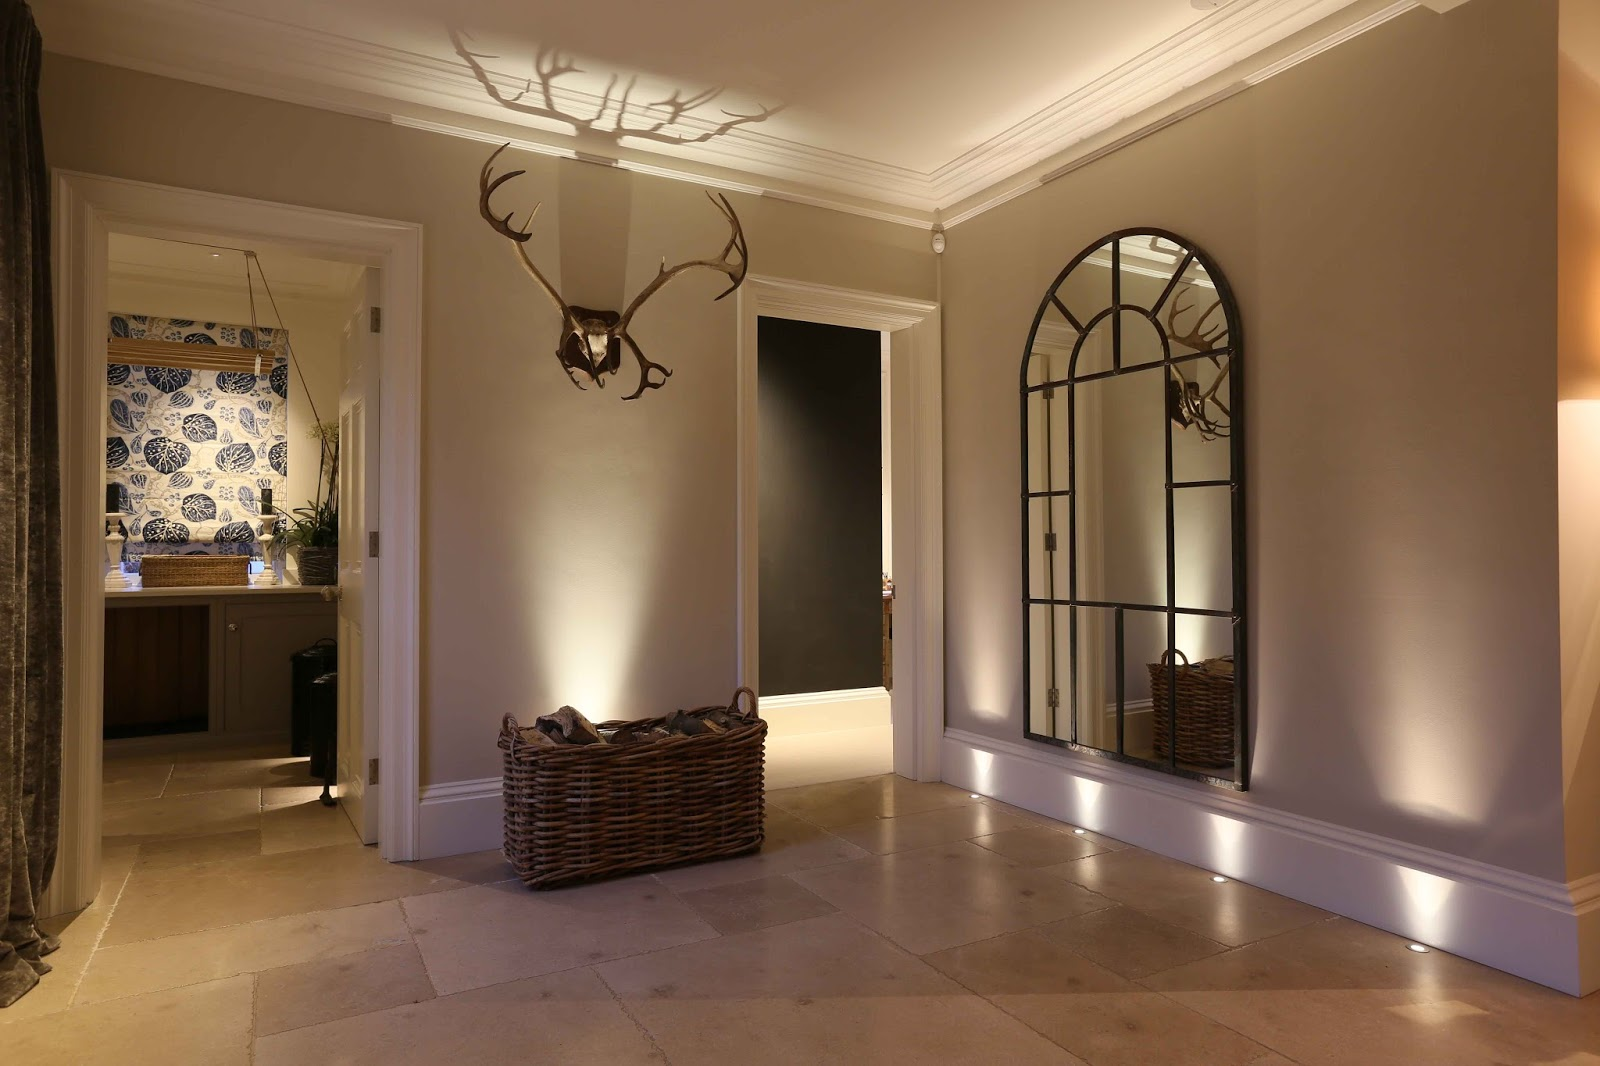 wall washing lighting in a low ceilinged room or basement introducing uplighting and wall washing increases ceiling up lighting